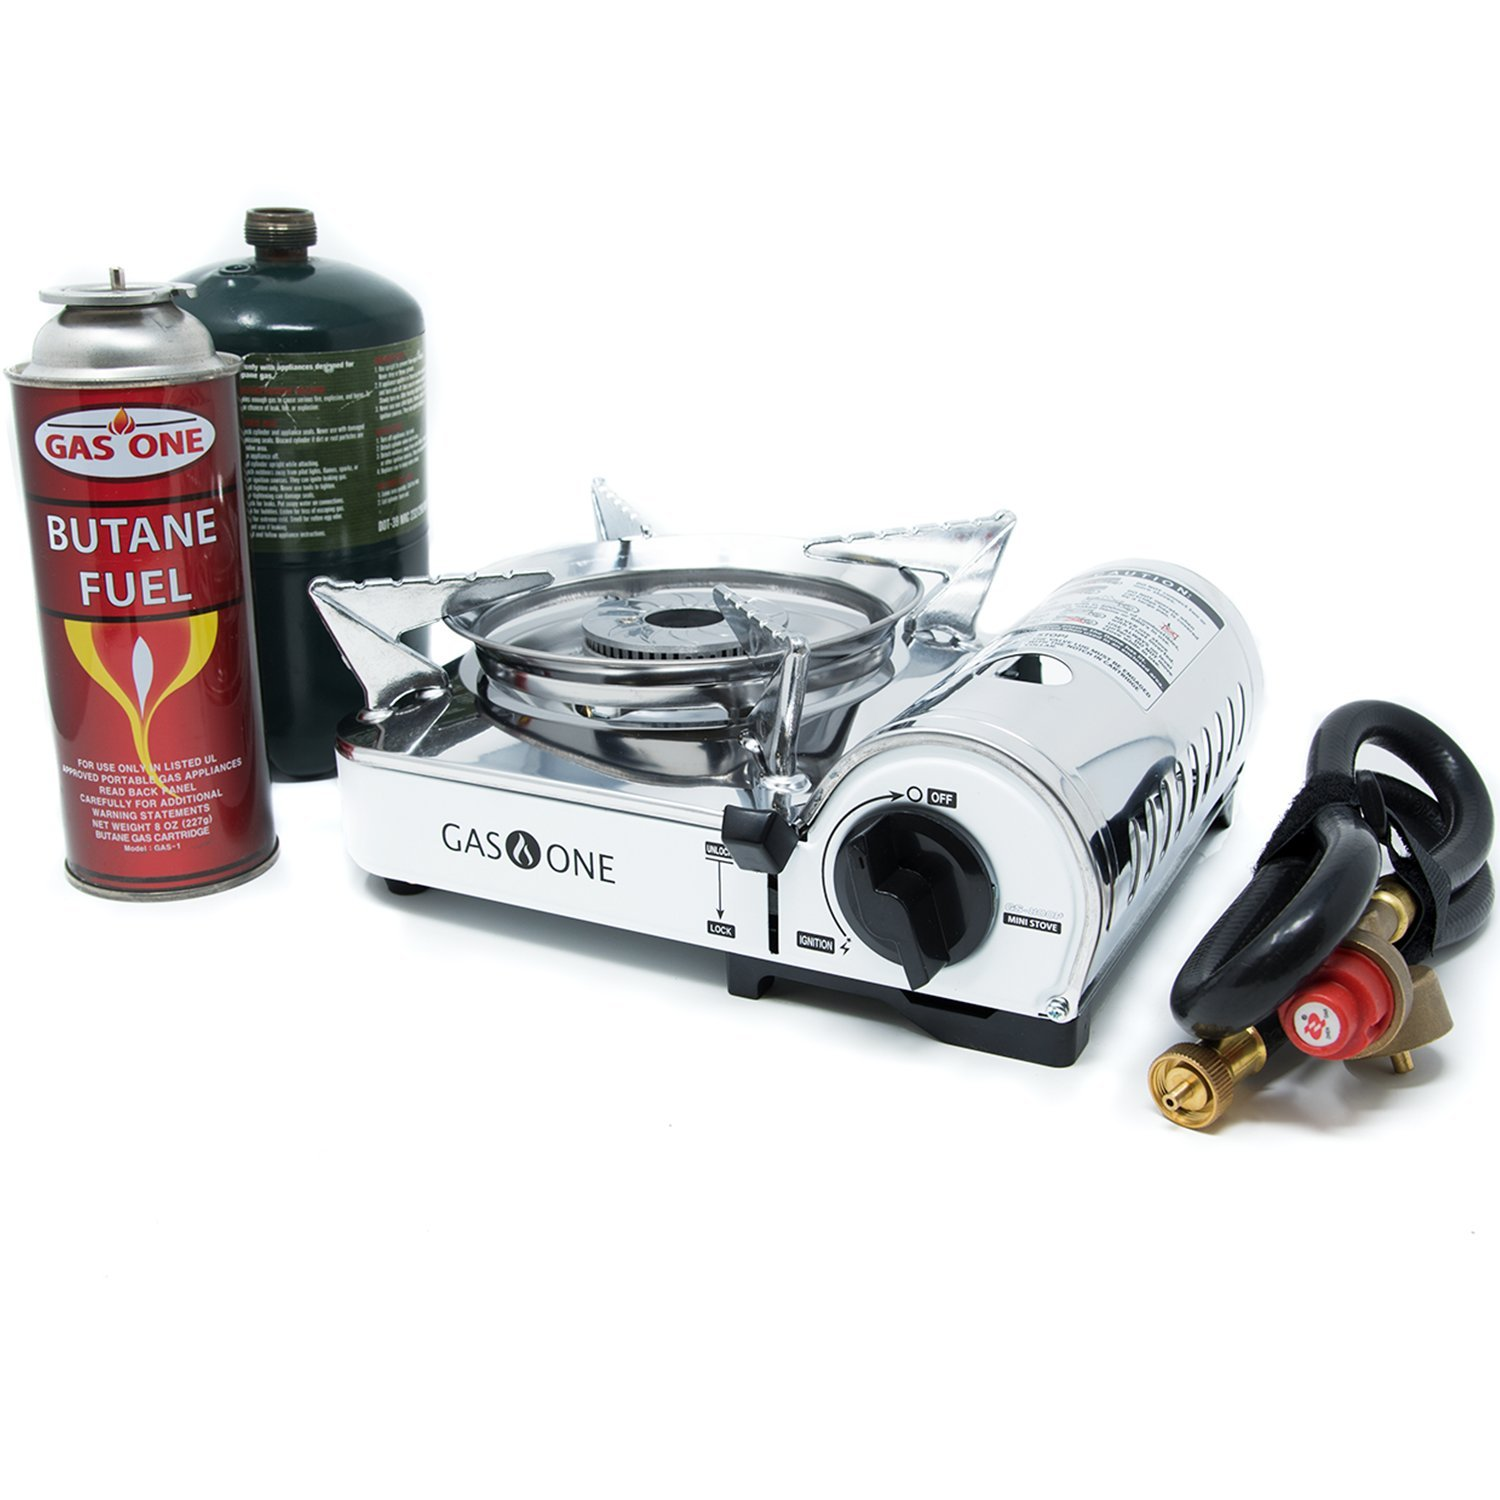 Gas One GS-800P -  Camp Stove - Propane & Butane Mini DUAL FUEL Stainless Portable Propane & Butane Camping Stove Burner with piezo ignition and Carrying Case (Stove)